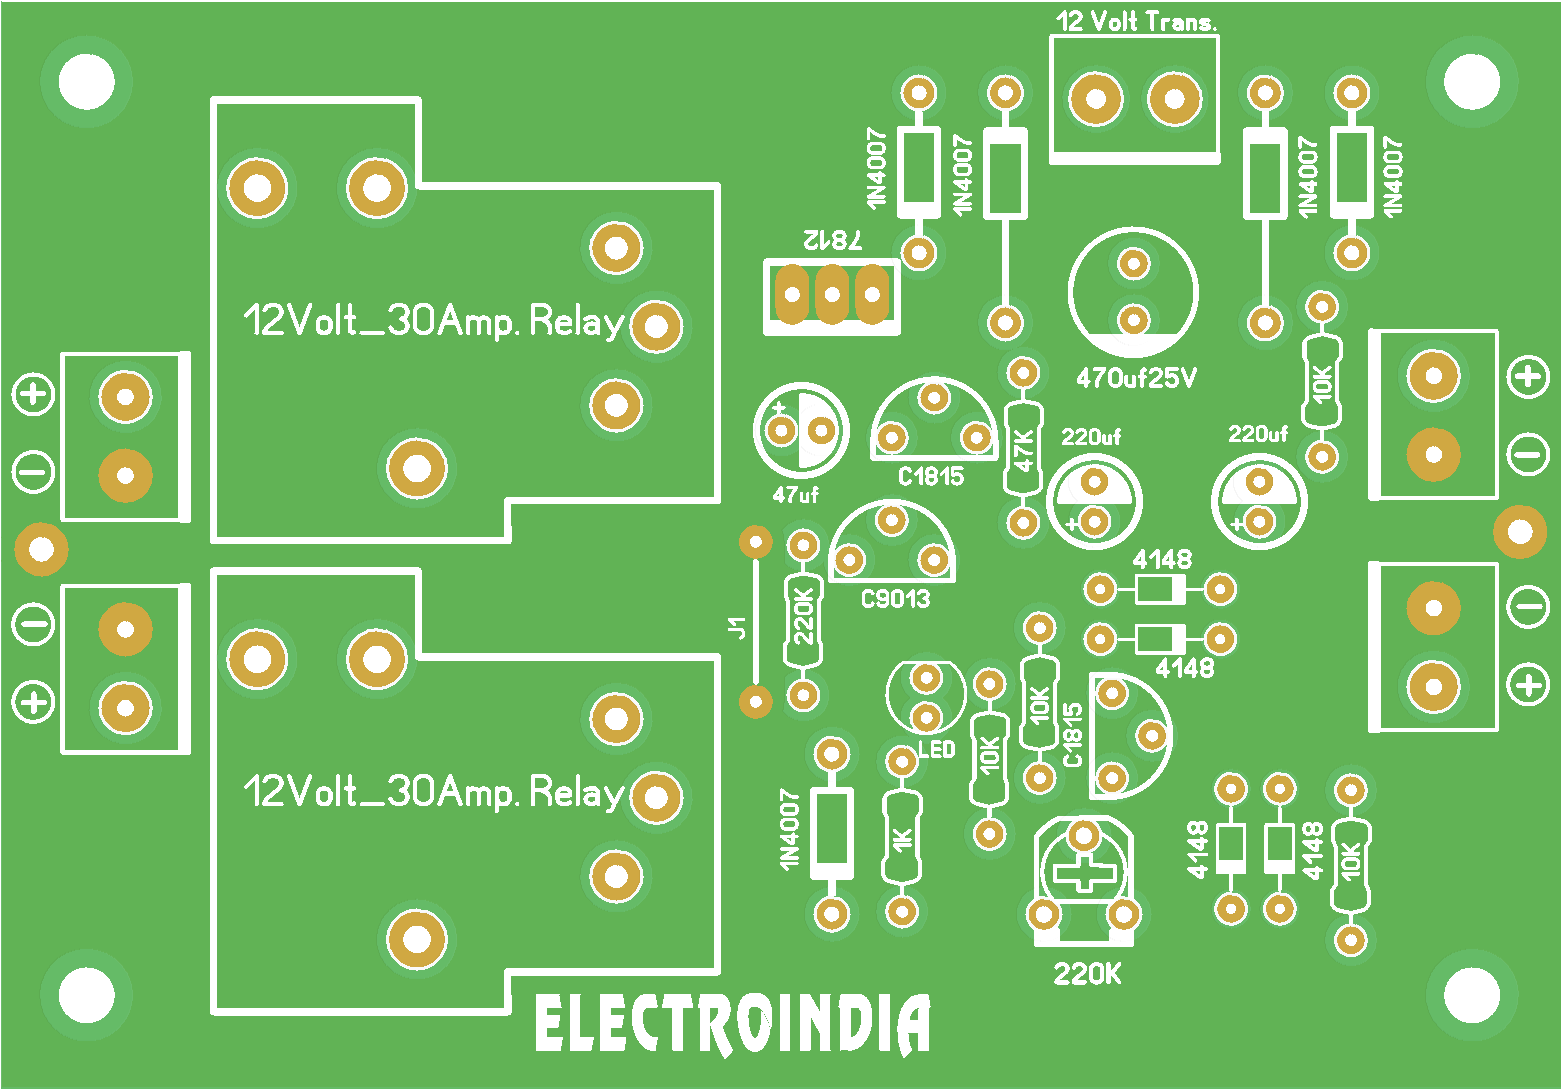 Echo Effect Preamp Board For Microphone With Pt2399 Ic Diy Share Schematic Speaker Protection High Power Audio Amplifiers Electro India This Is The